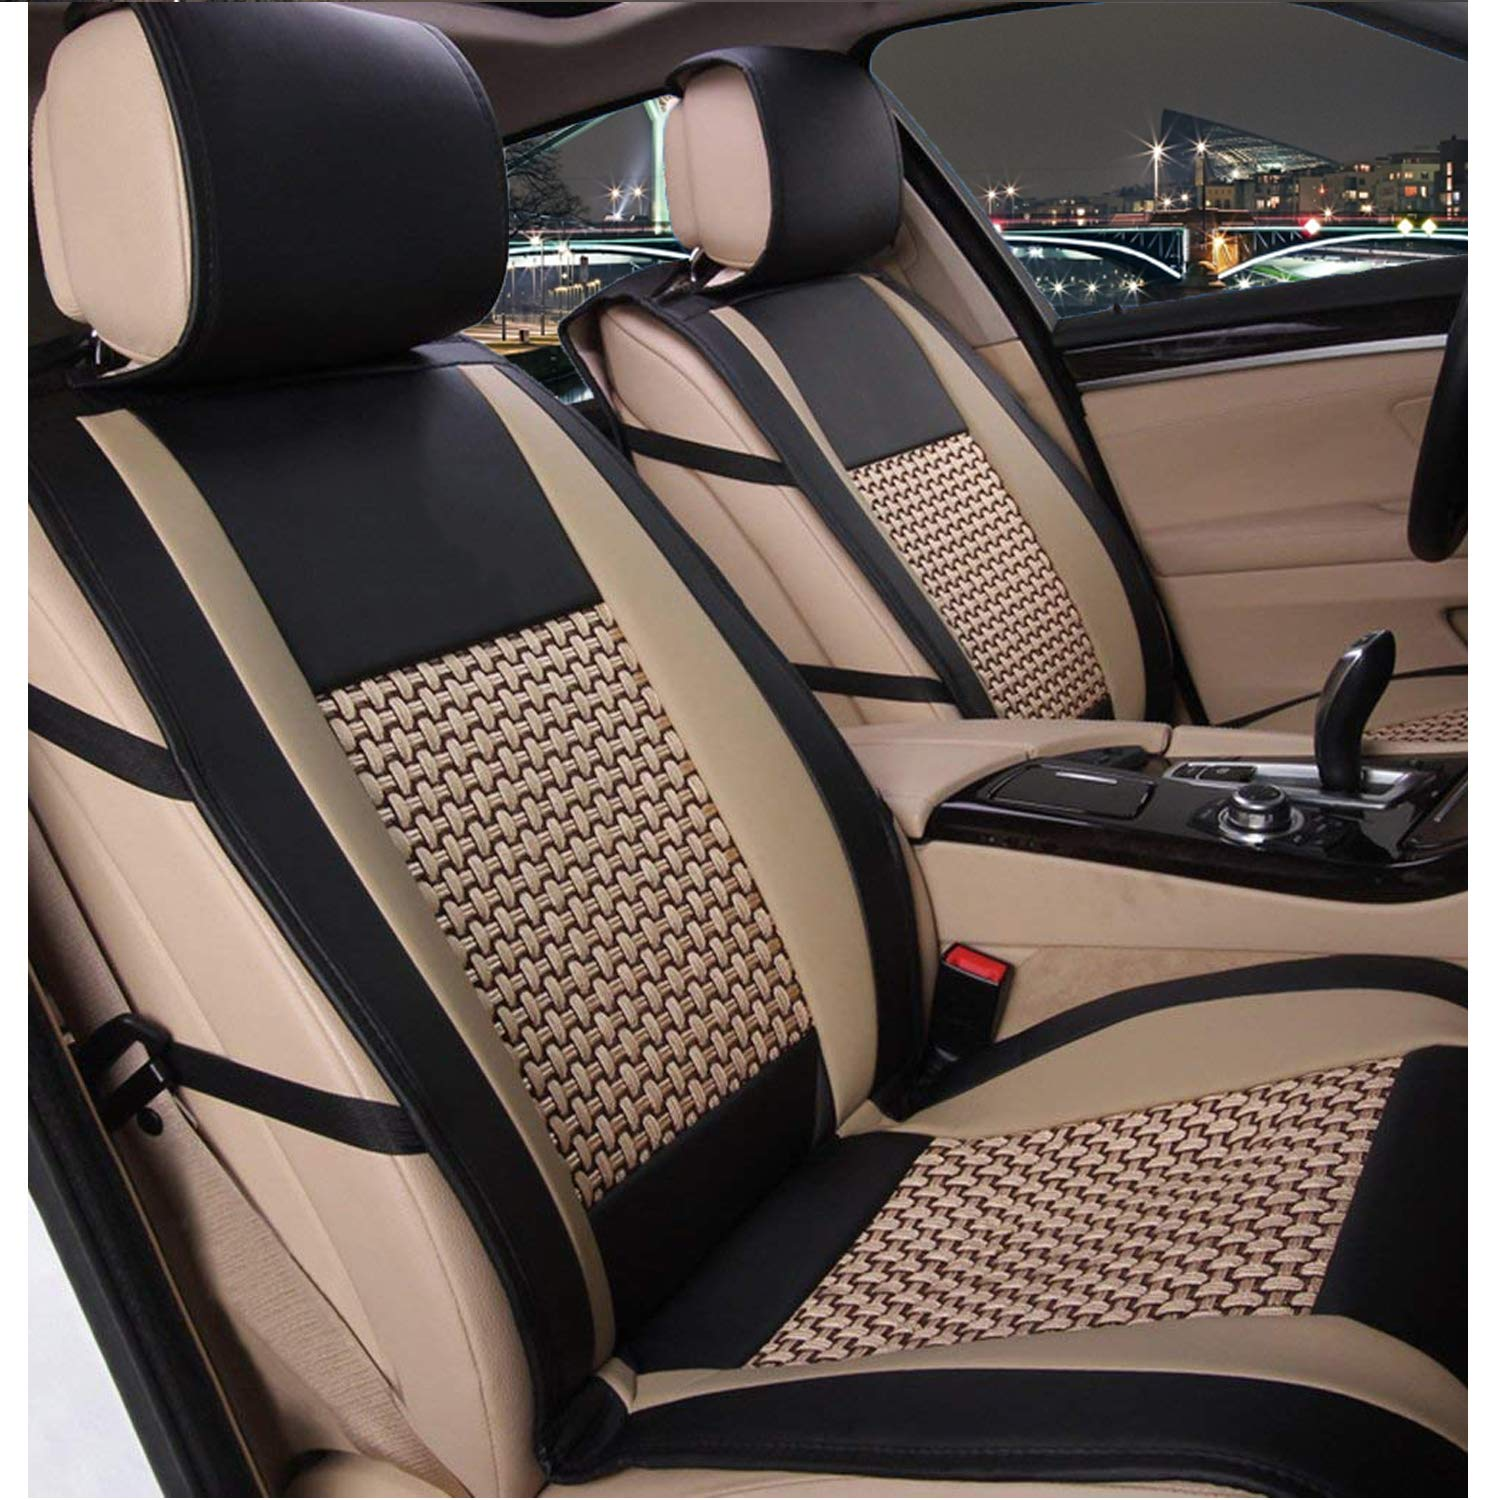 10 PCS Universal PU Leather Front and Rear Car Seat Cushion Cover Needlework Ice Silk Seat Pad Protectors with Health Care Pillows for Year-Round Use Airbag Compatible